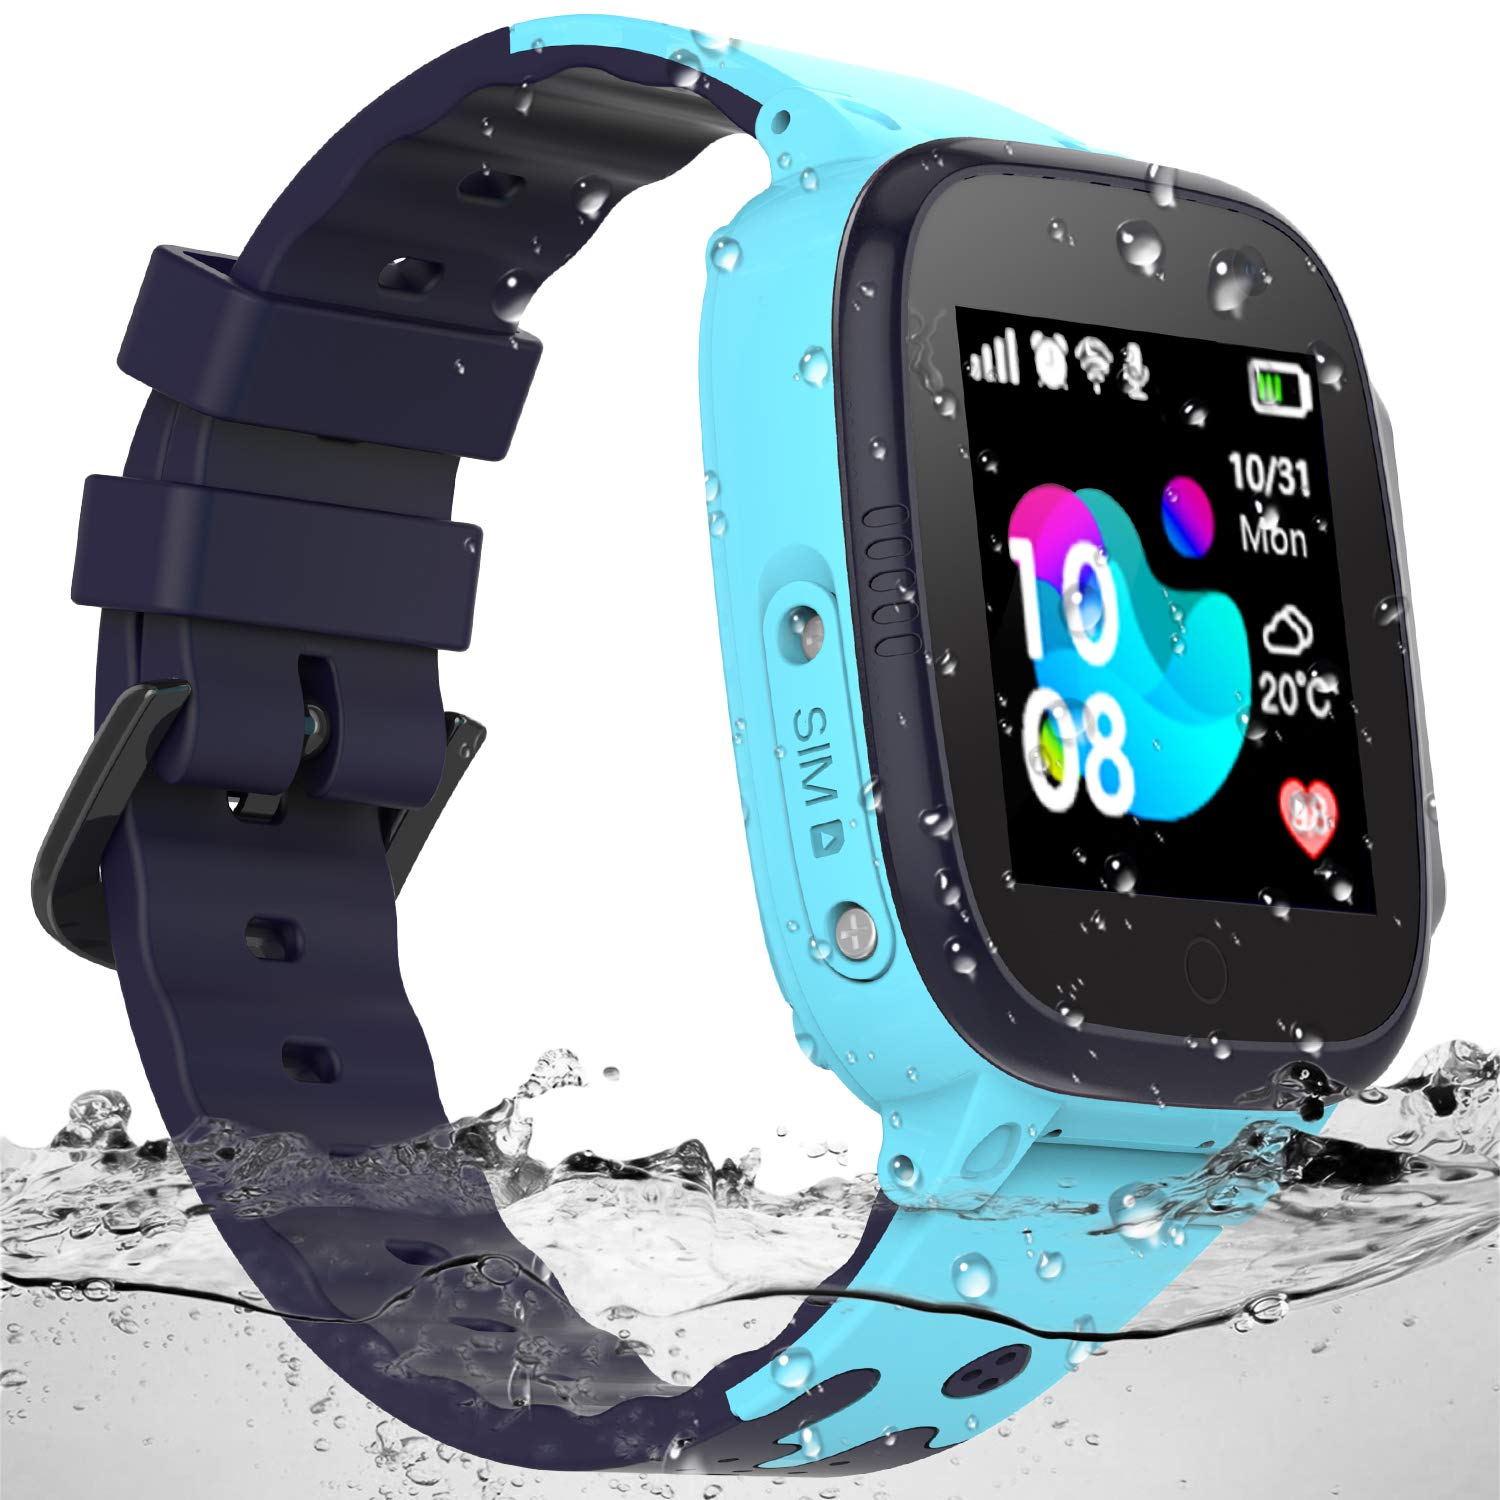 Smart Watch for Kids, SZBXD Waterproof Smartwatch with LBS/GPS Tracker Phone SOS Alarm Clock Camera Christmas Birthday Gift for 3-12 Year Old Boys ...